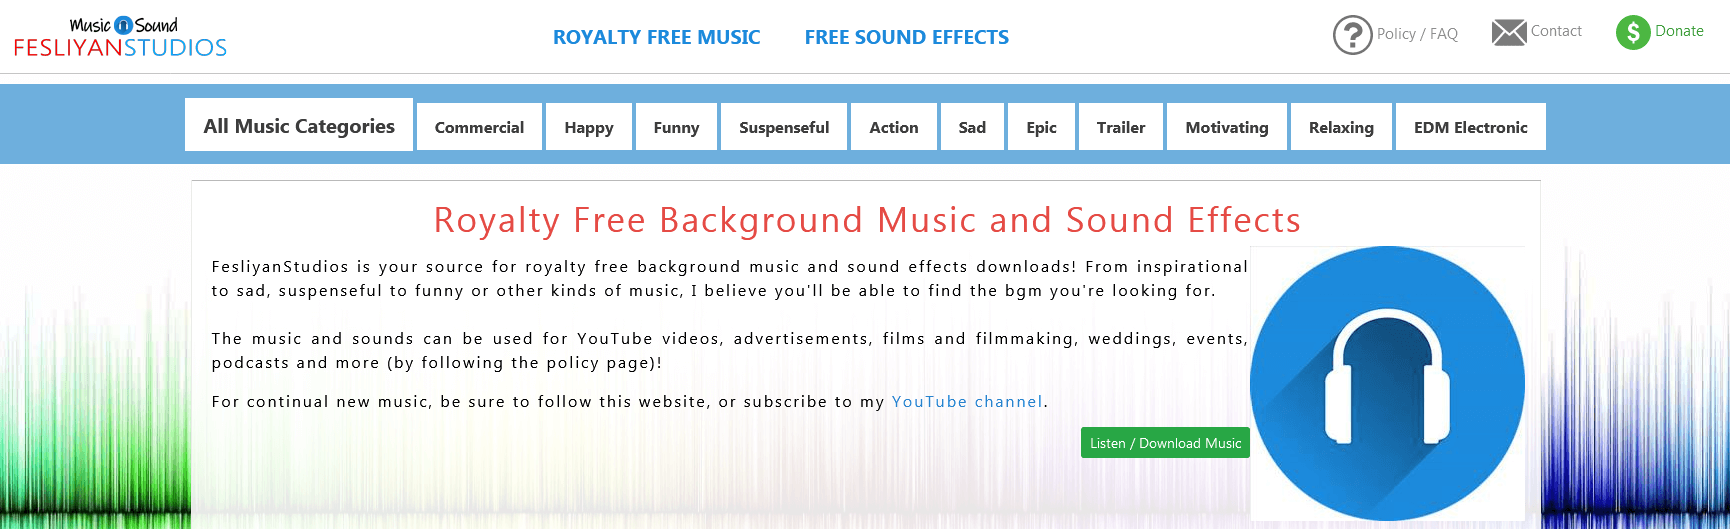 FesliyanStudios - Royalty Free Music and sound effects